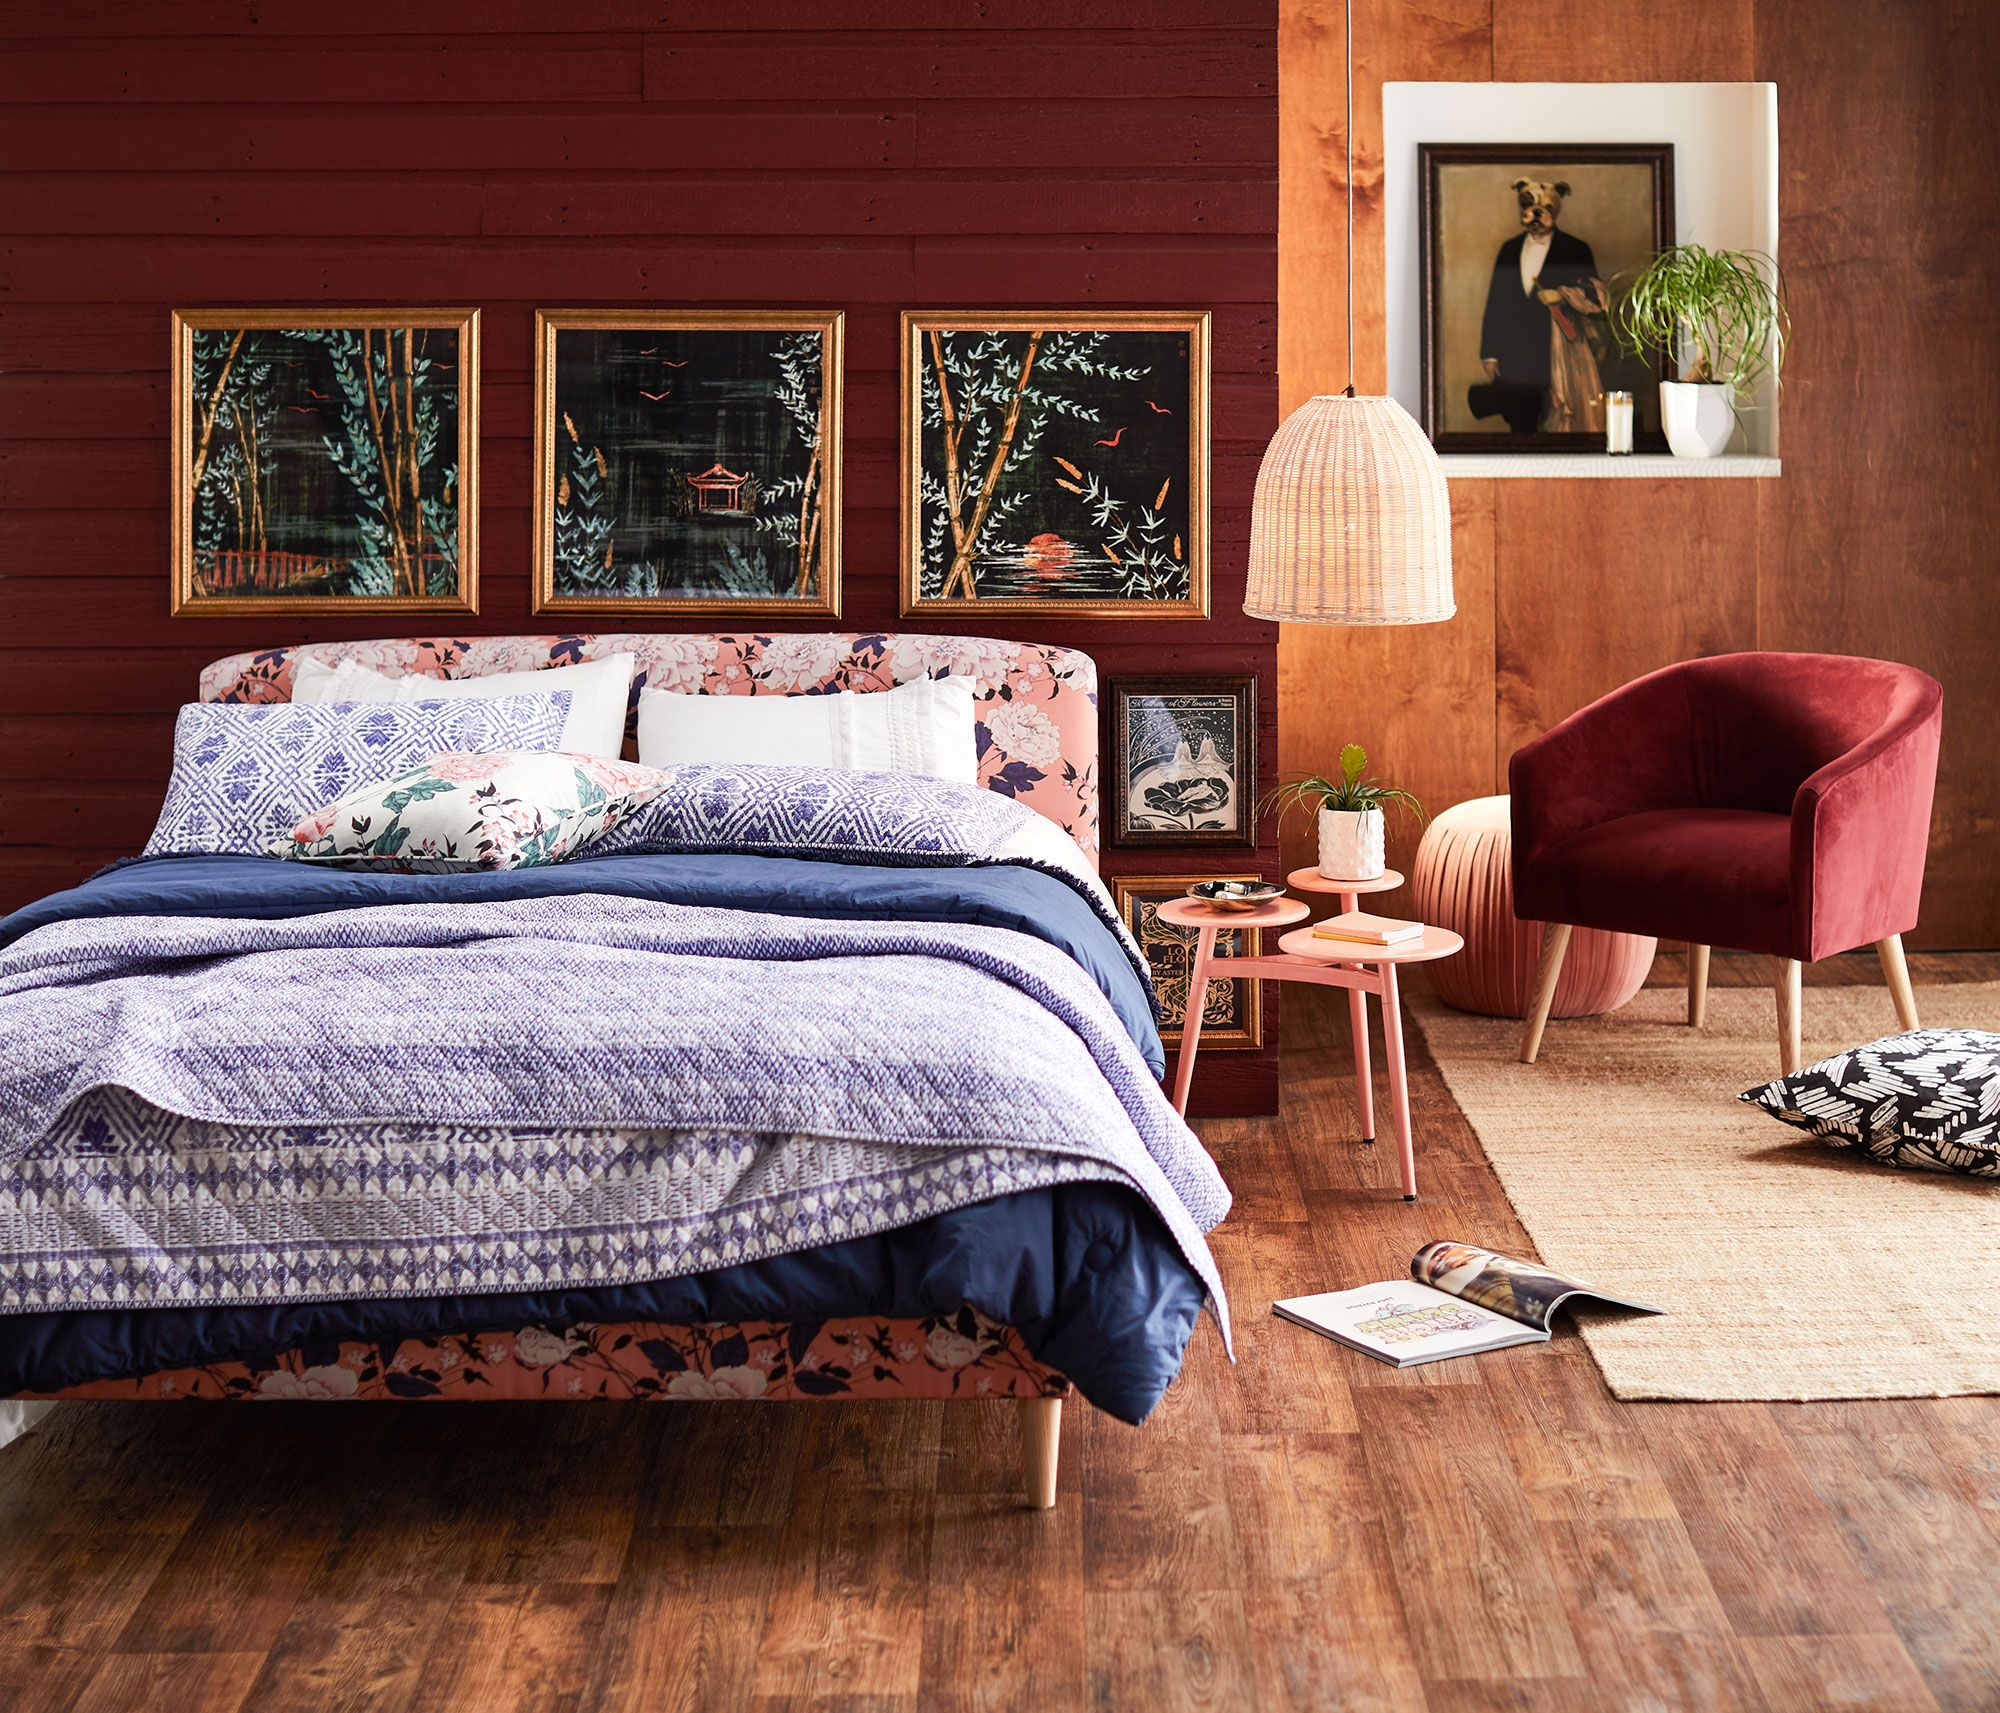 Drew barrymore launches flower home at walmart home